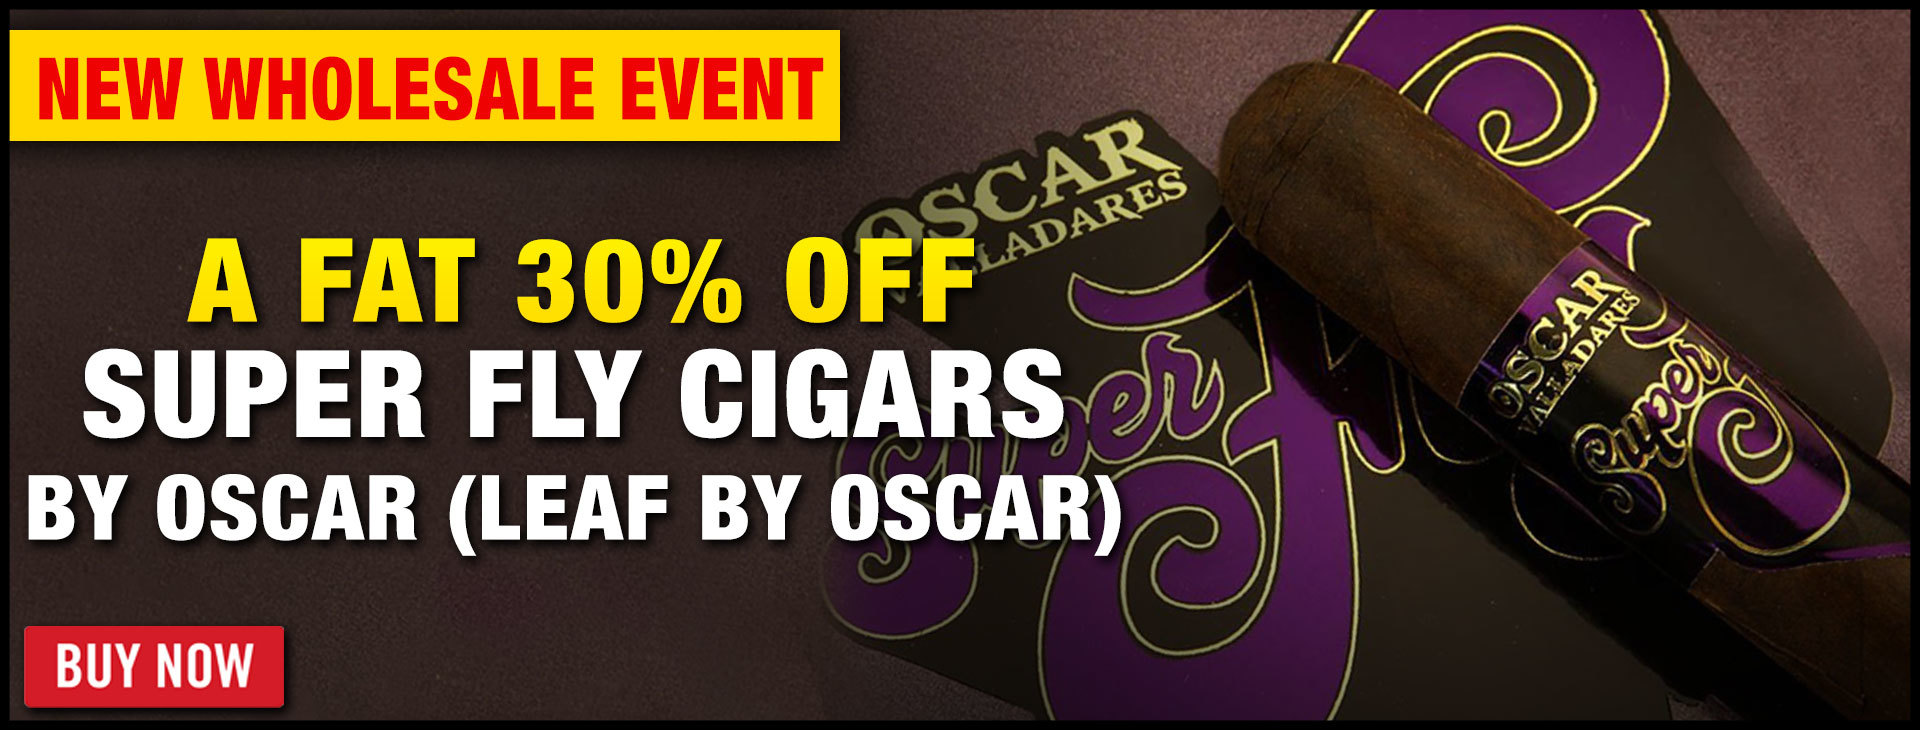 30% OFF SUPER FLY BY OSCAR!